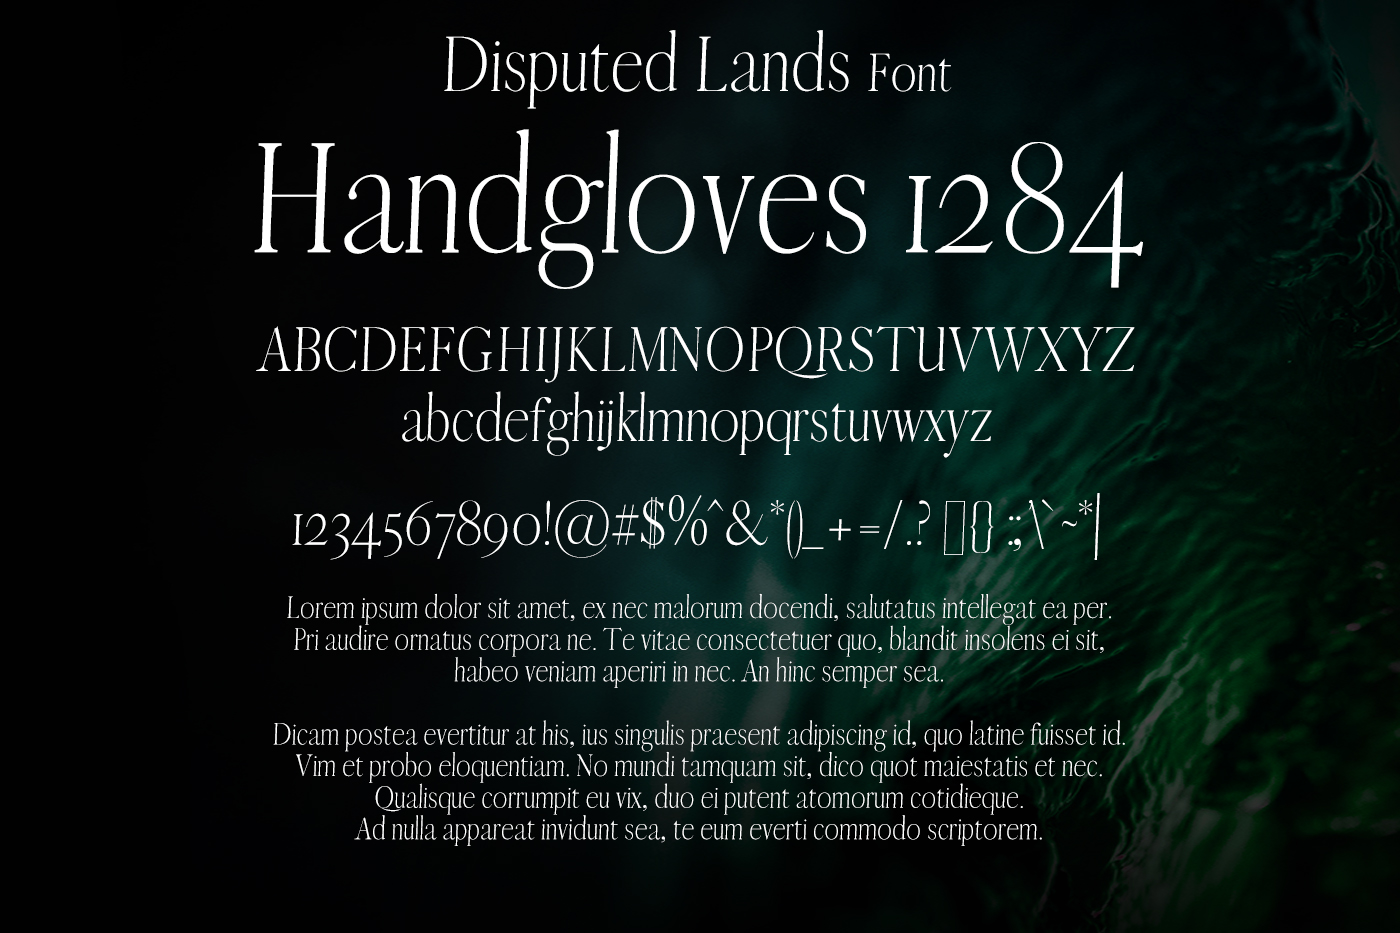 Disputed Lands Font example image 2